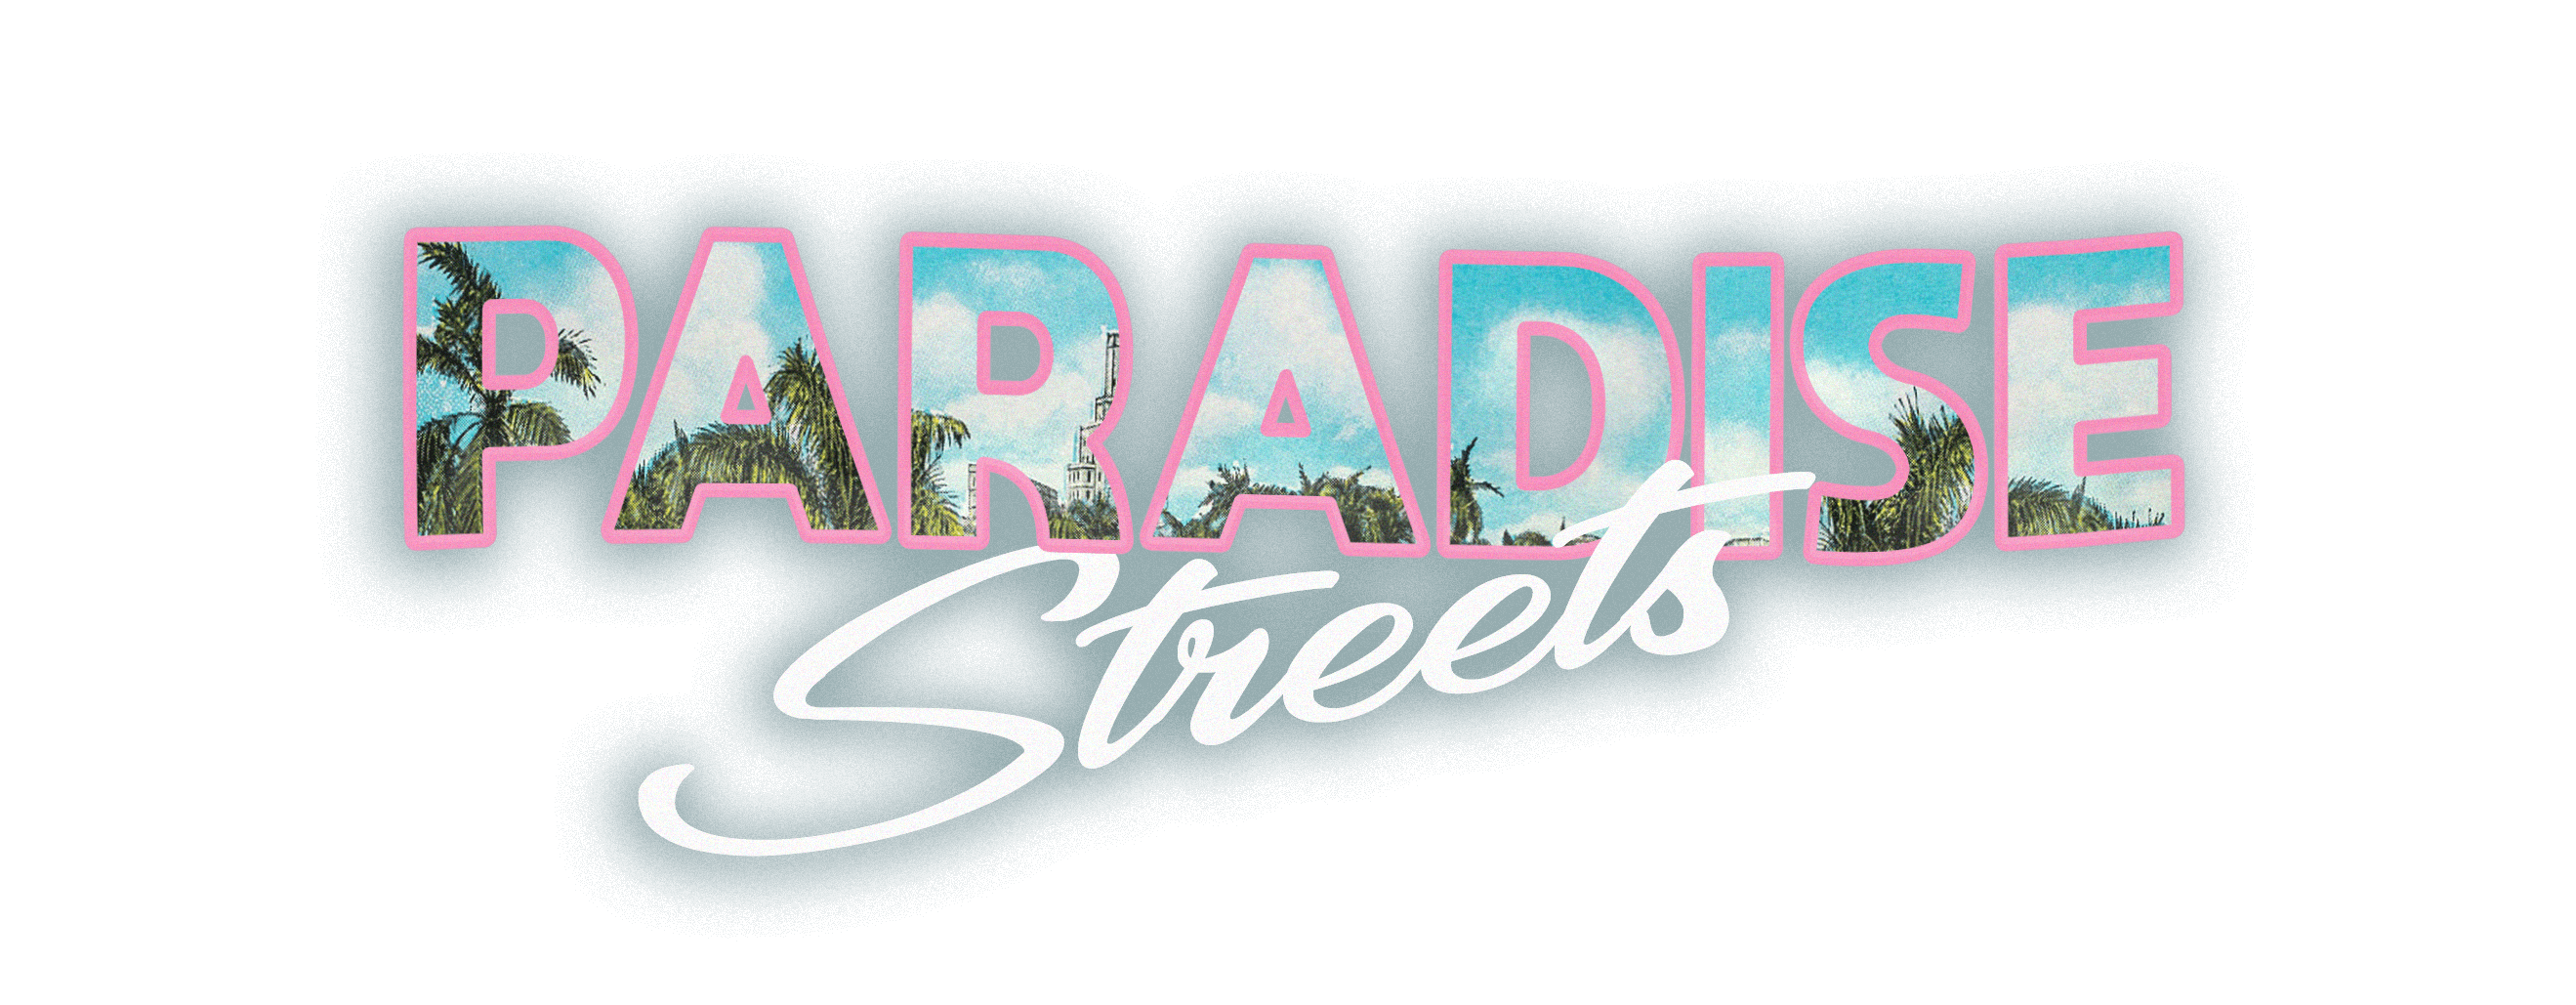 Paradise Streets | PrettyLittleThing